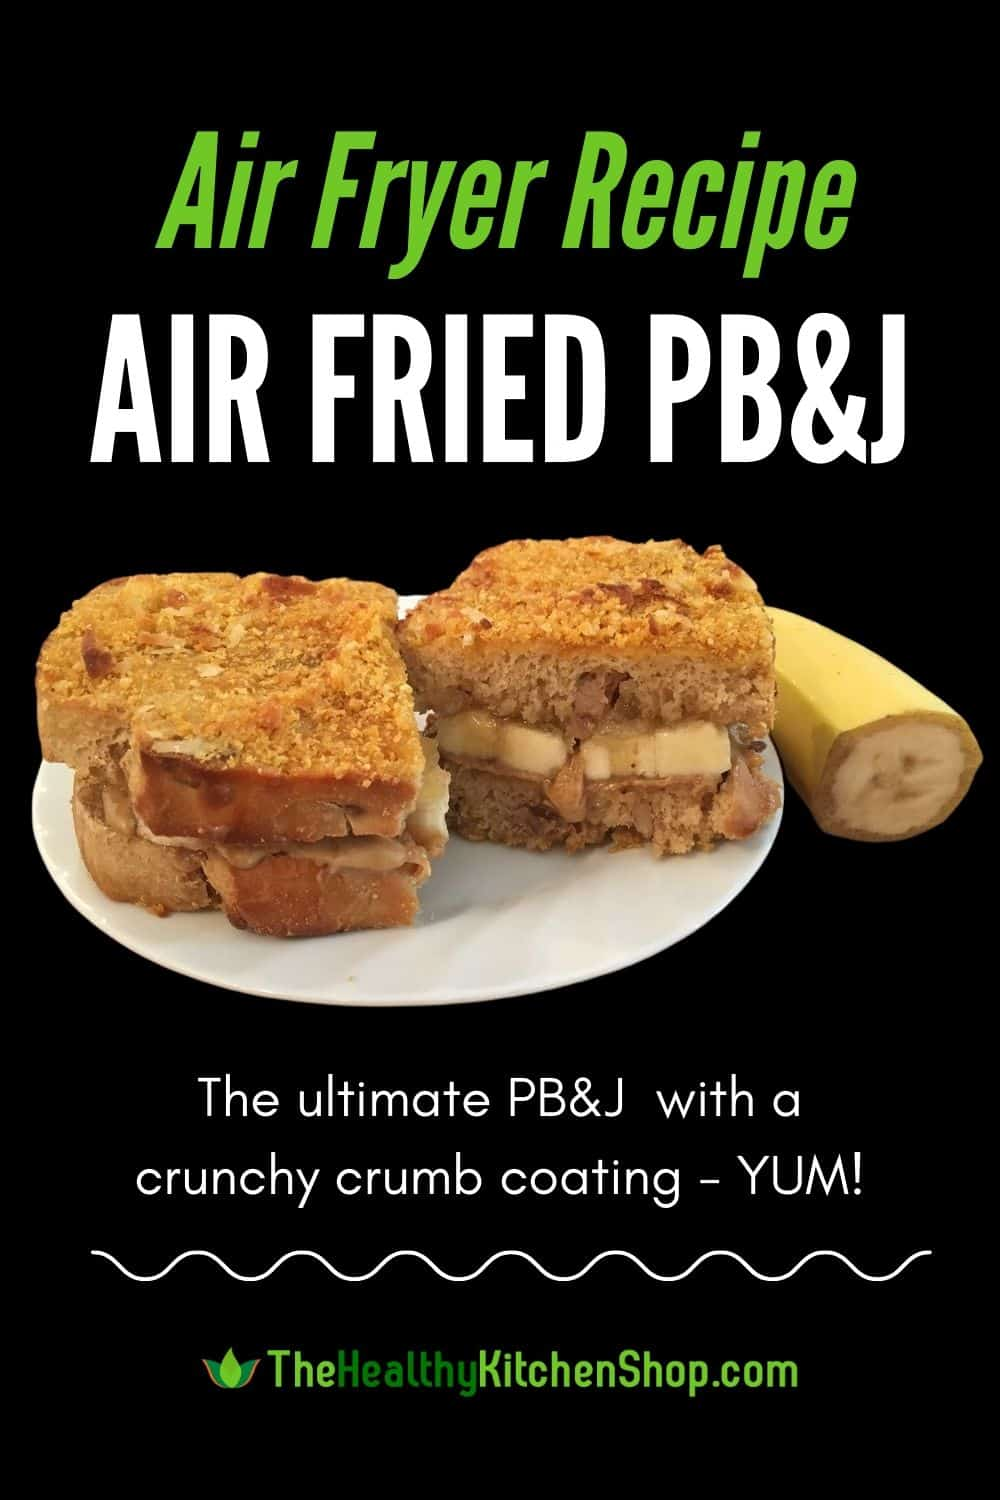 Air Fried Peanut Butter Banana Jelly Sandwich with Crunchy Crumb Coating